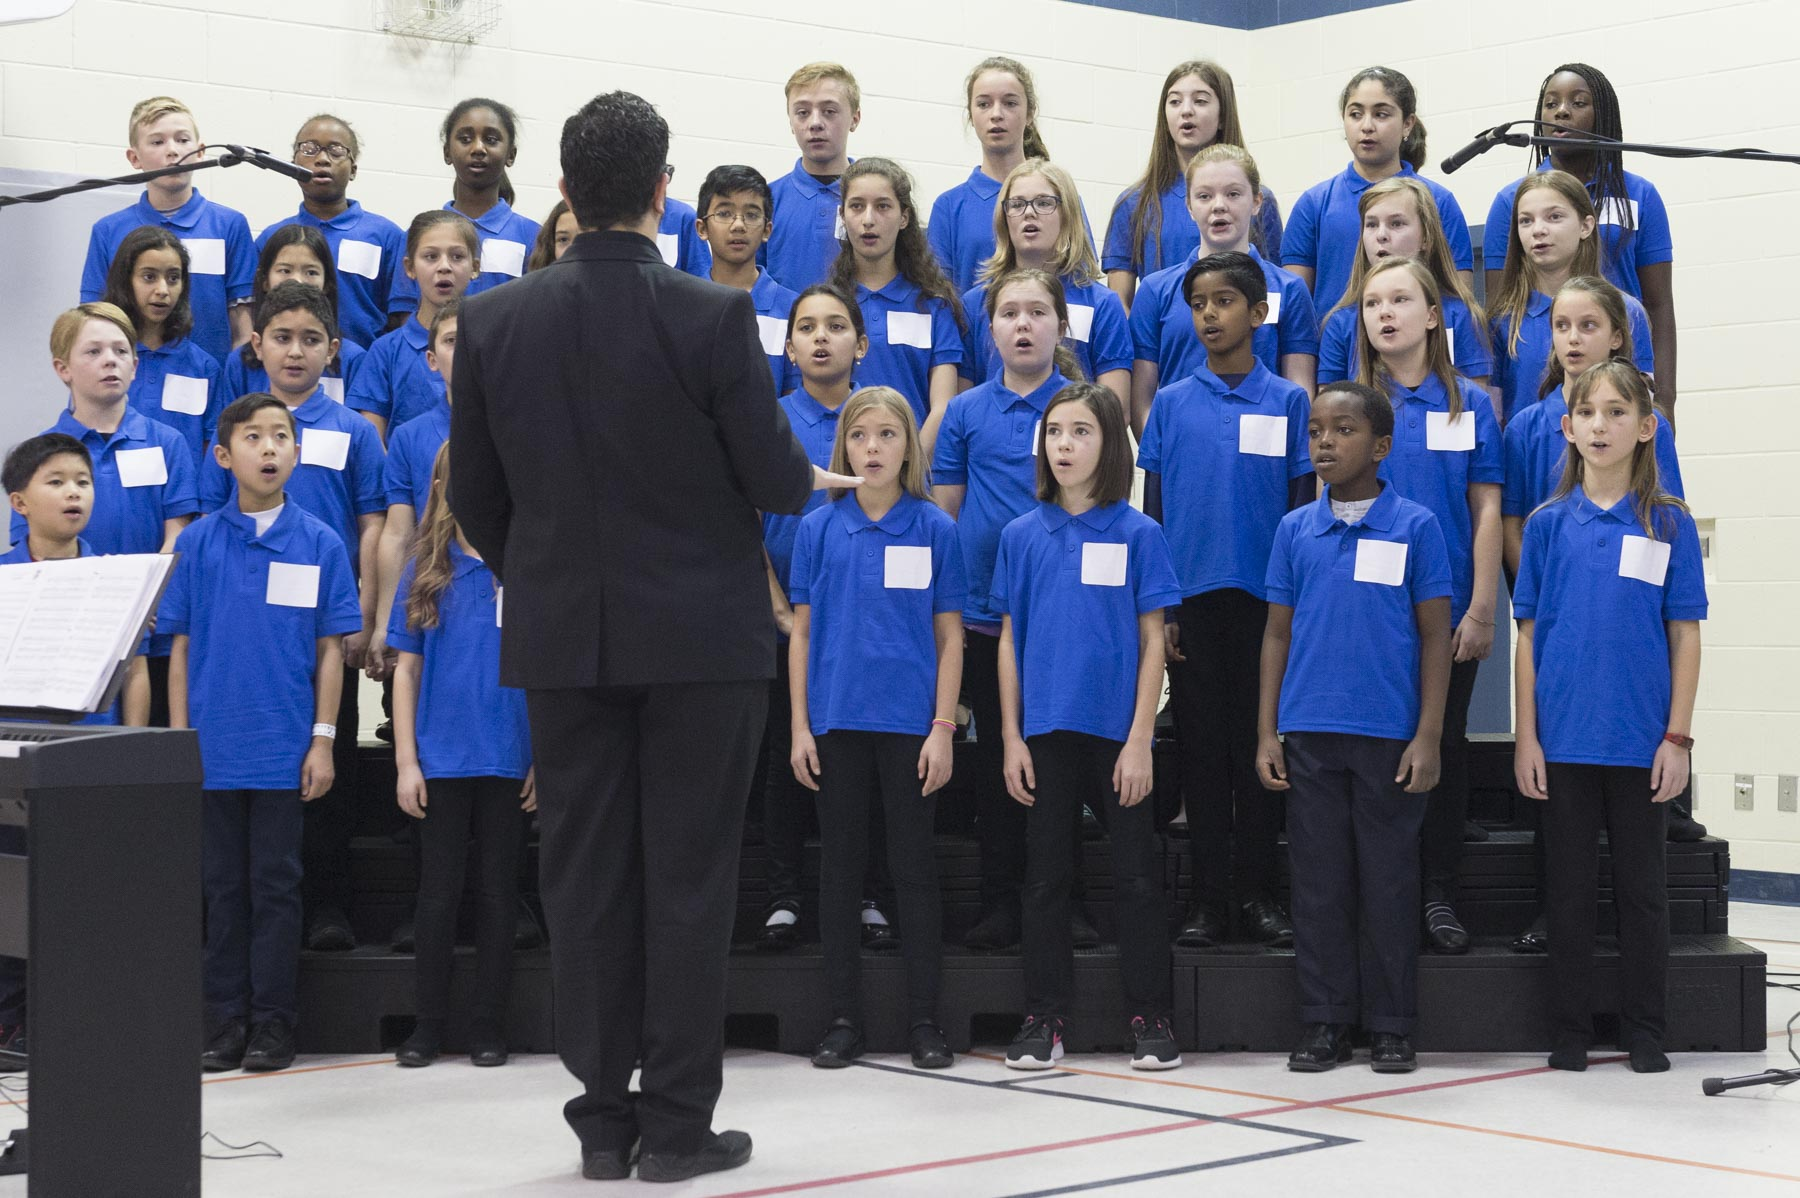 As part of the official ceremony, the school choir sung the national anthem.